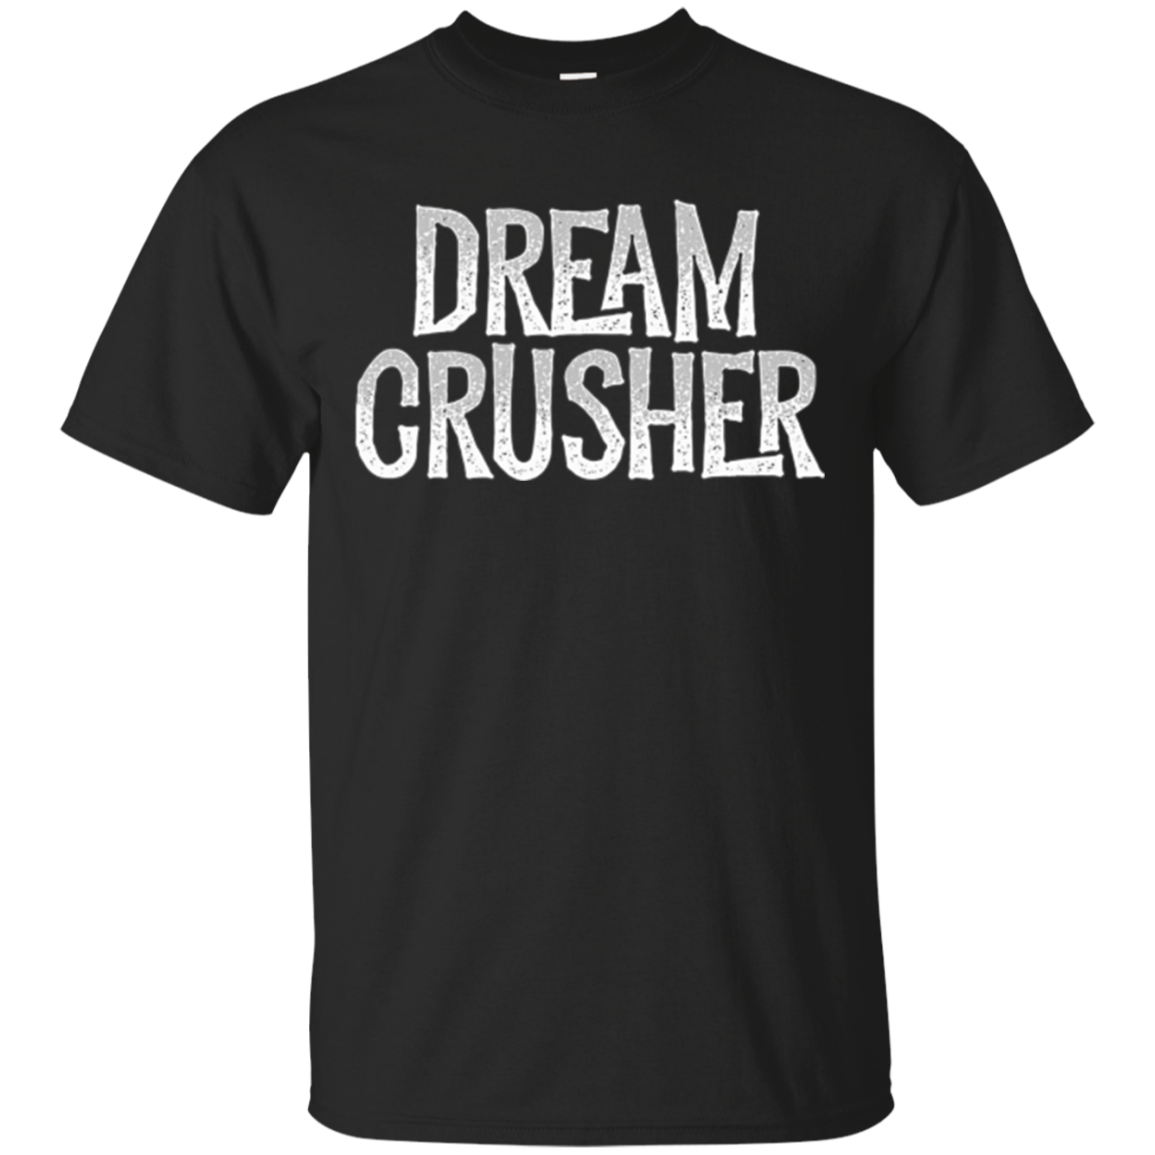 The Dream Crusher Party T-Shirt